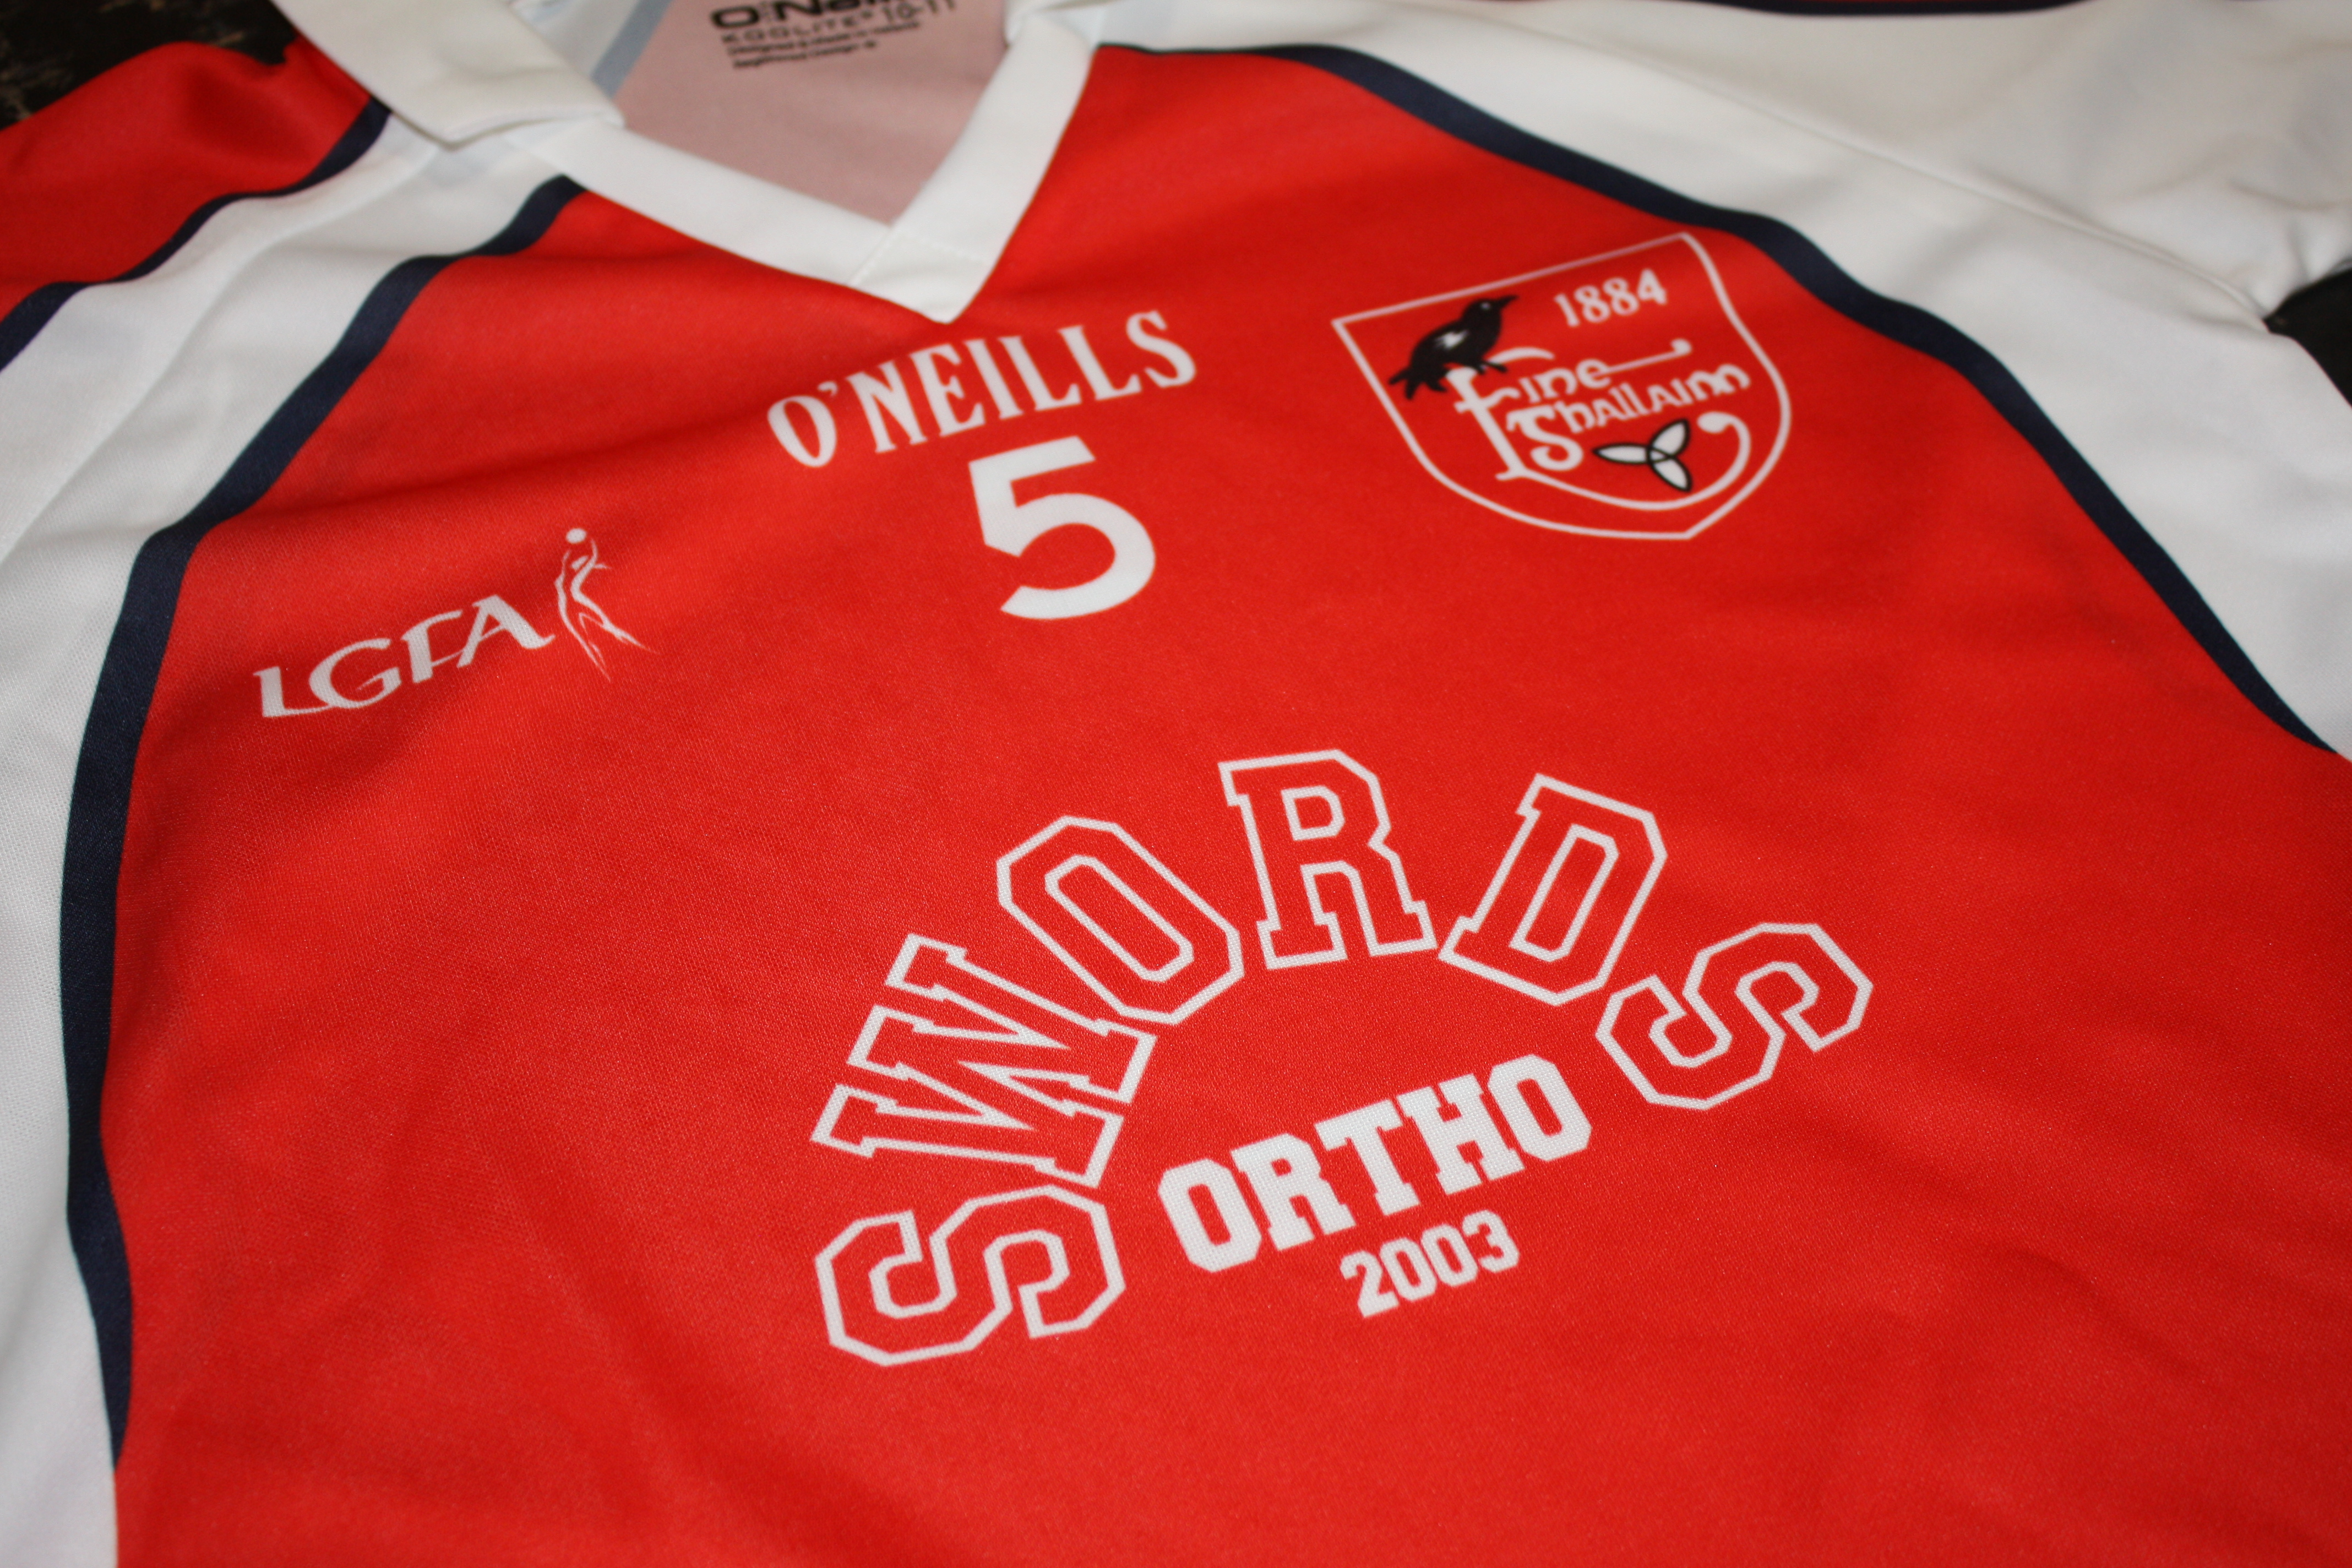 The new Fingallians GAA Under 10s Swords Orthodontics Shirt